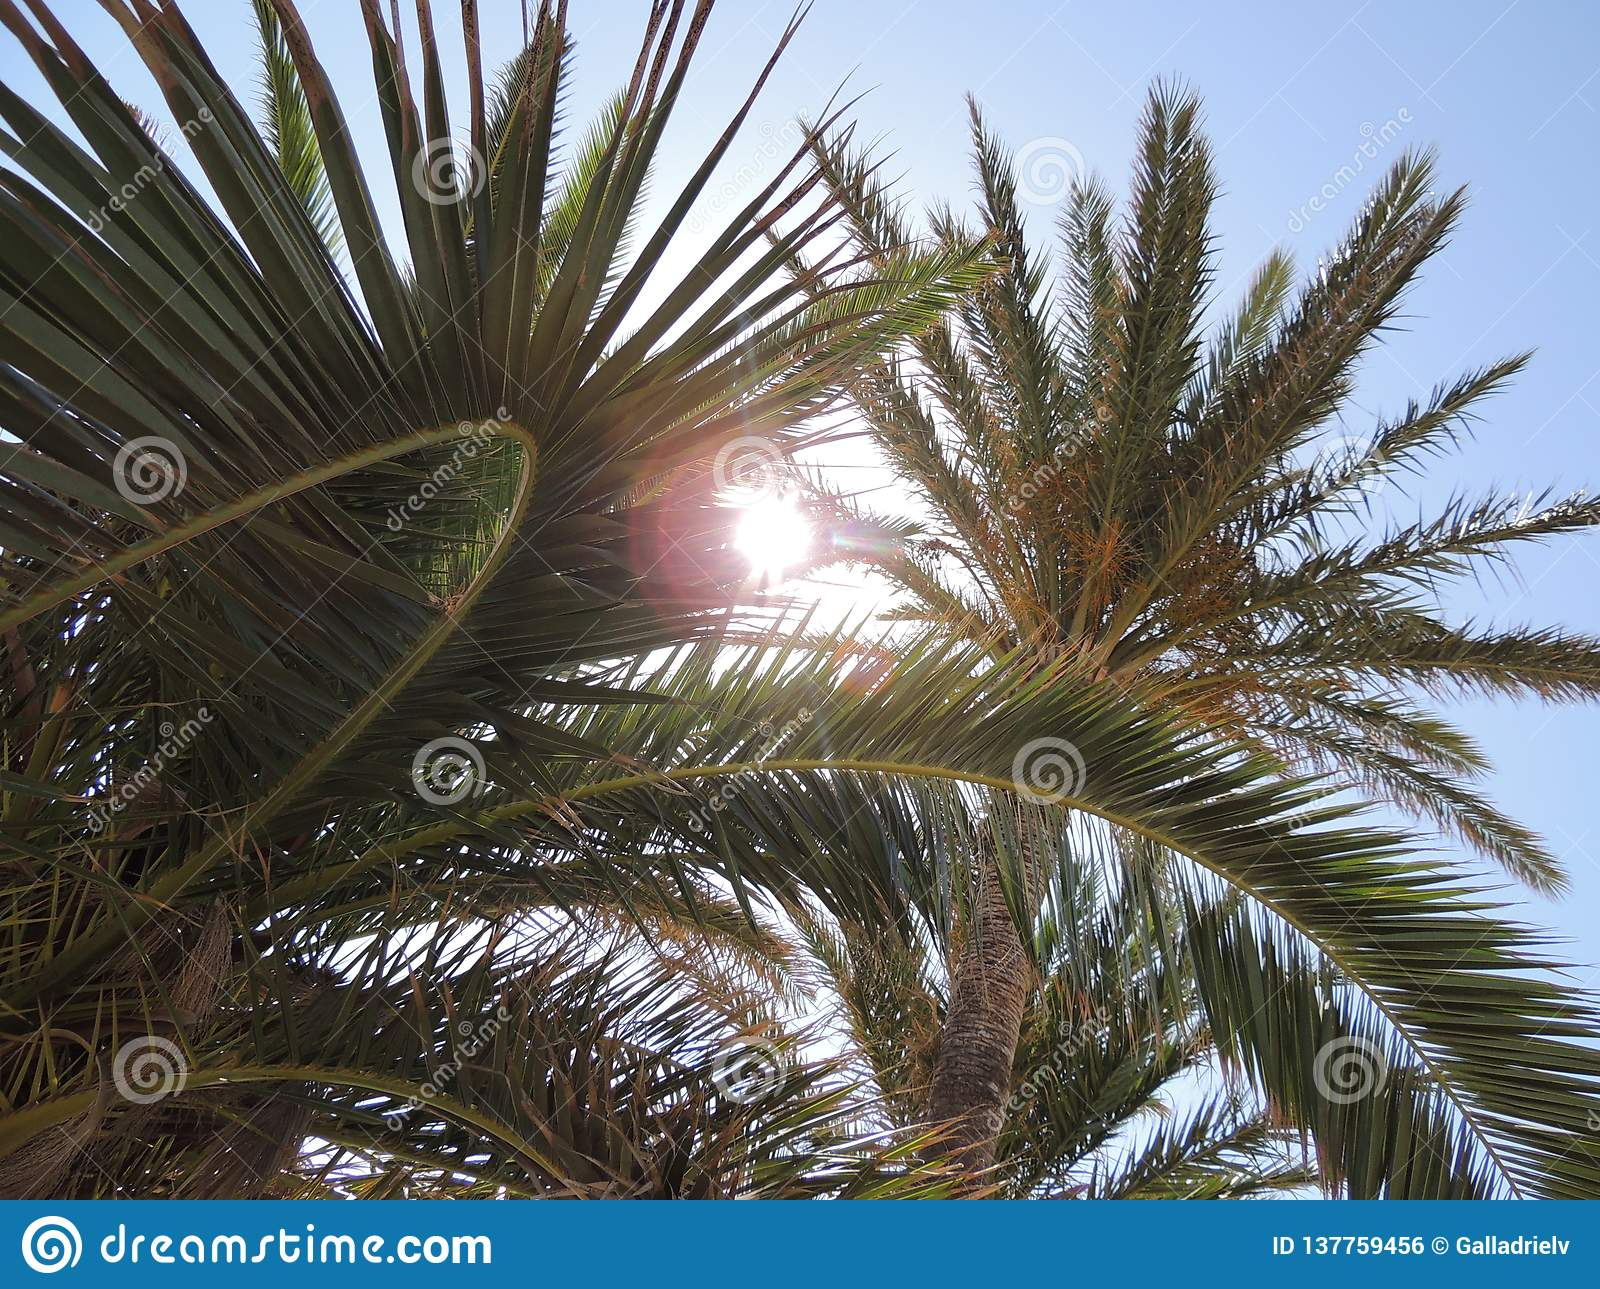 Tropical palm tree over beautiful blue sky. Relaxing, discovering and enjoying the tropical vacations.